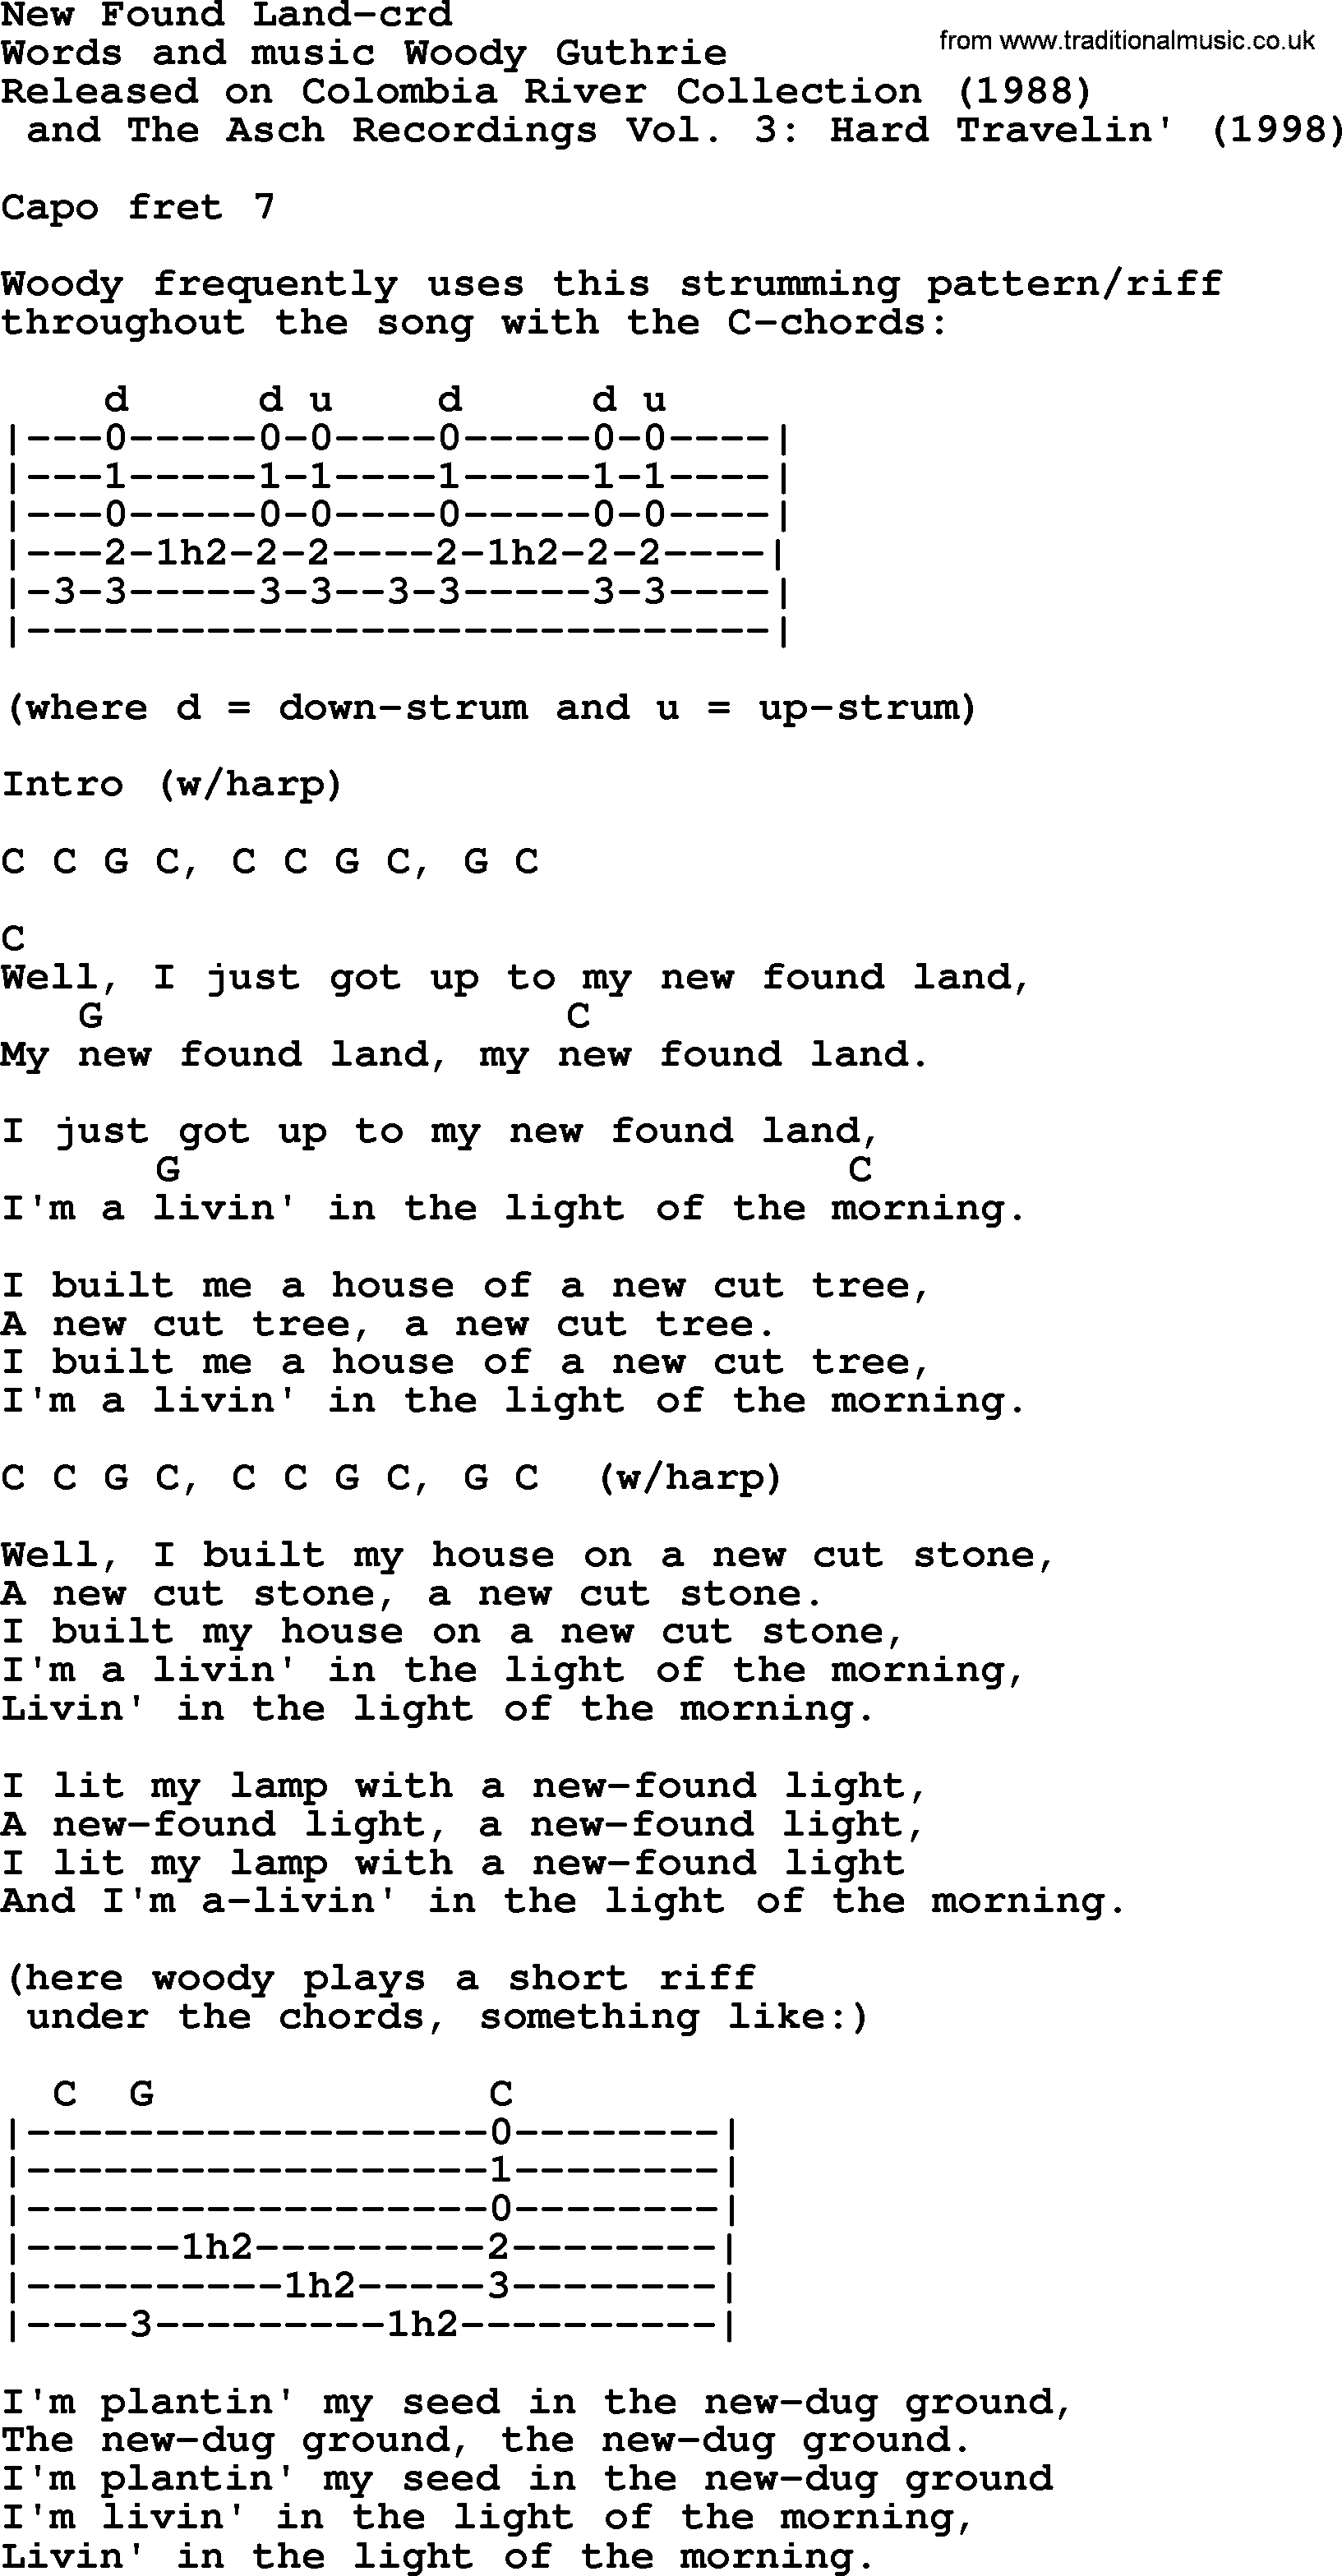 Guitar chords for the house that built me images guitar chords woody guthrie song new found land lyrics and chords woody guthrie song new found land lyrics hexwebz Gallery